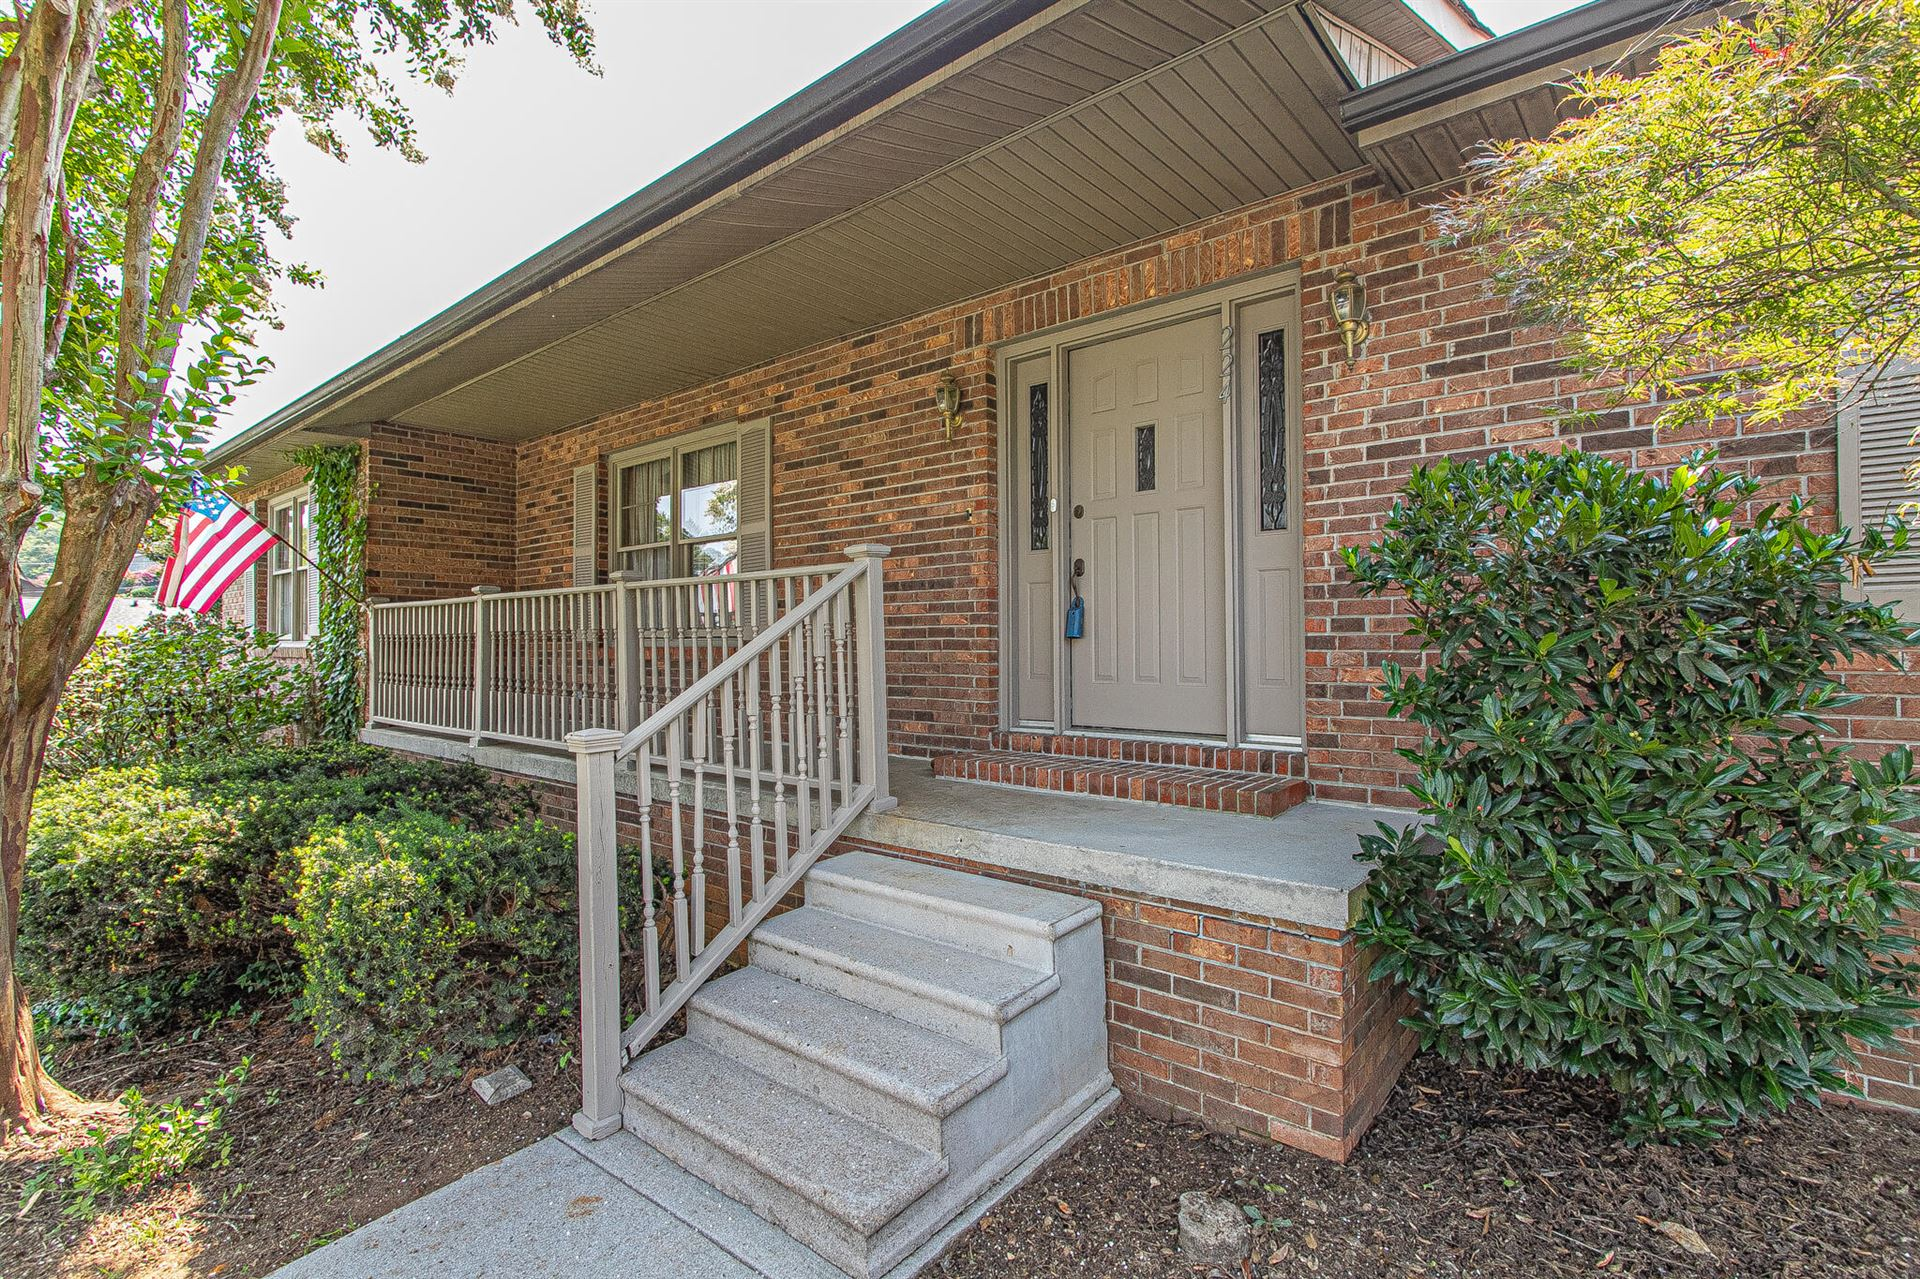 Photo of 224 Crowfield Rd, Knoxville, TN 37922 (MLS # 1161318)